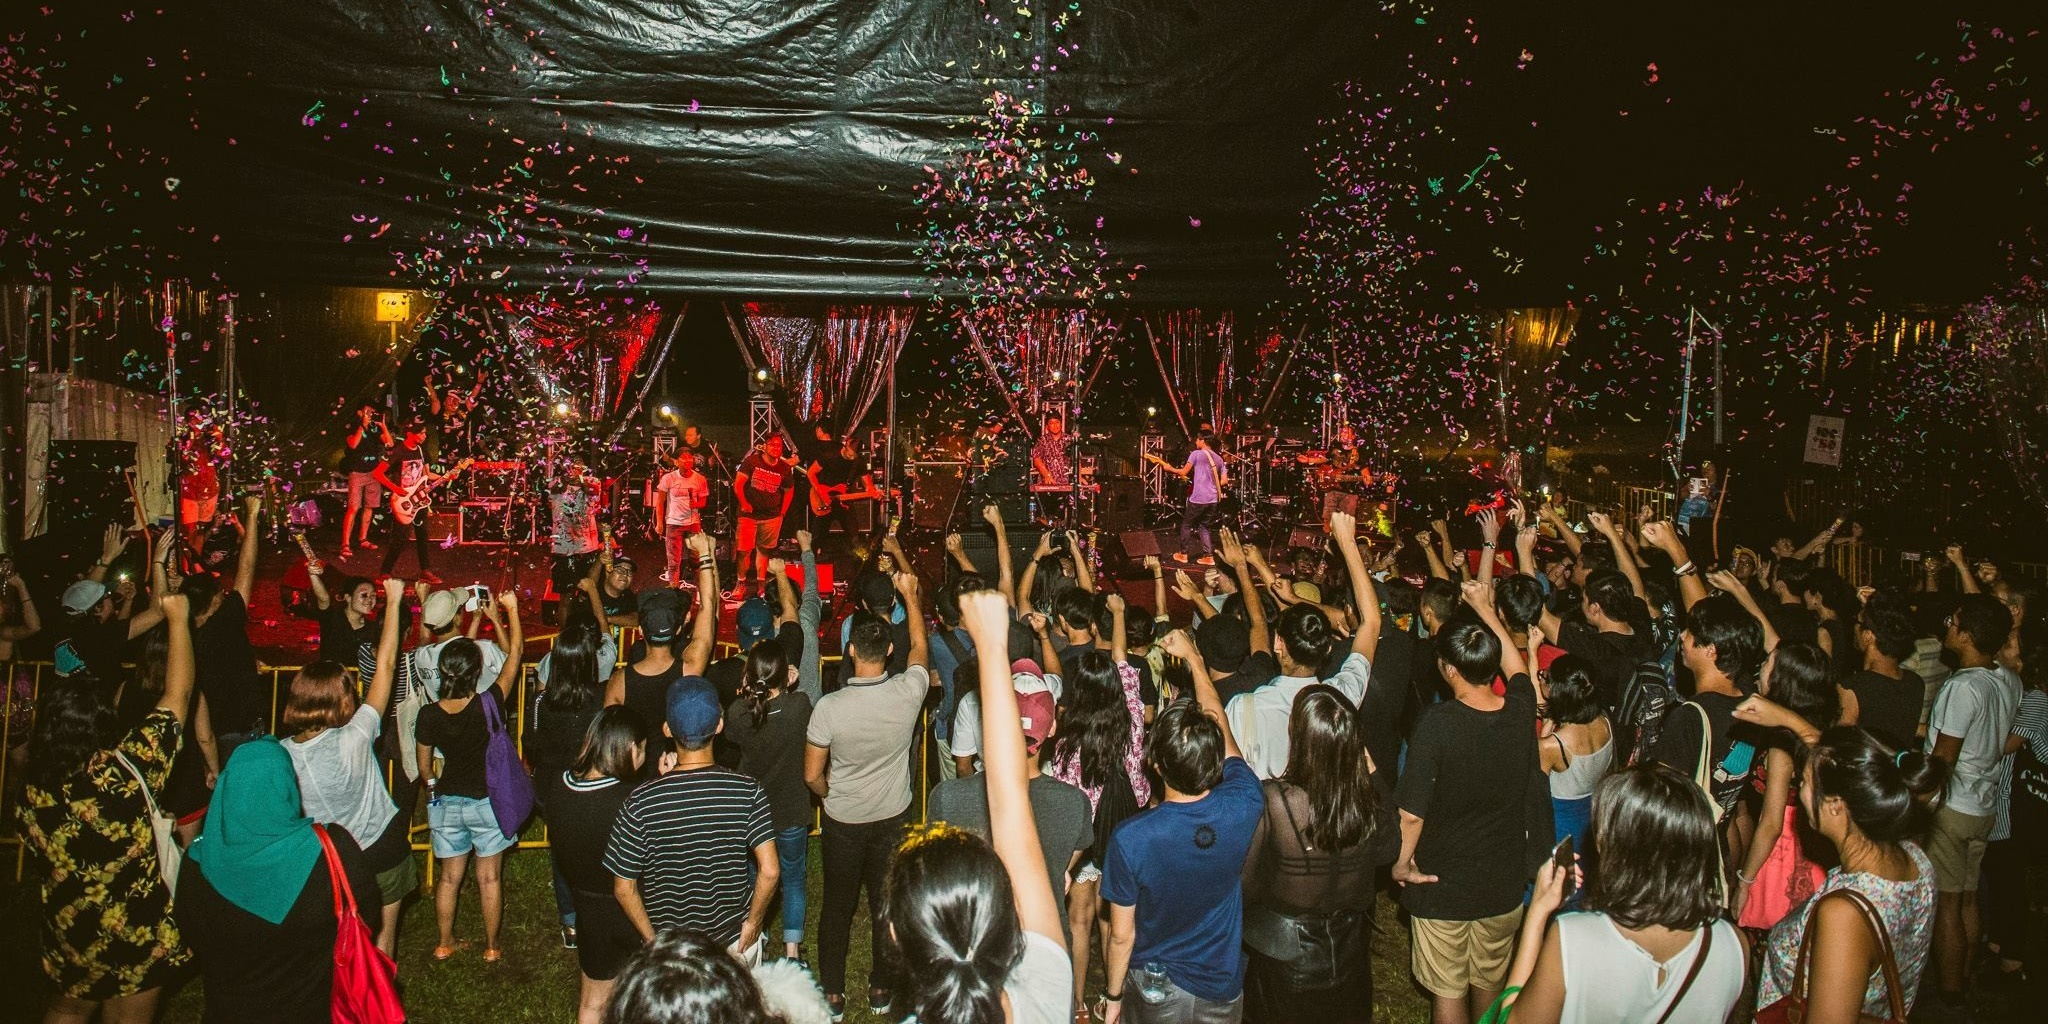 100 Bands reveals their cool venue and 2nd wave lineup, including A Vacant Affair, Generation 69 & lots more